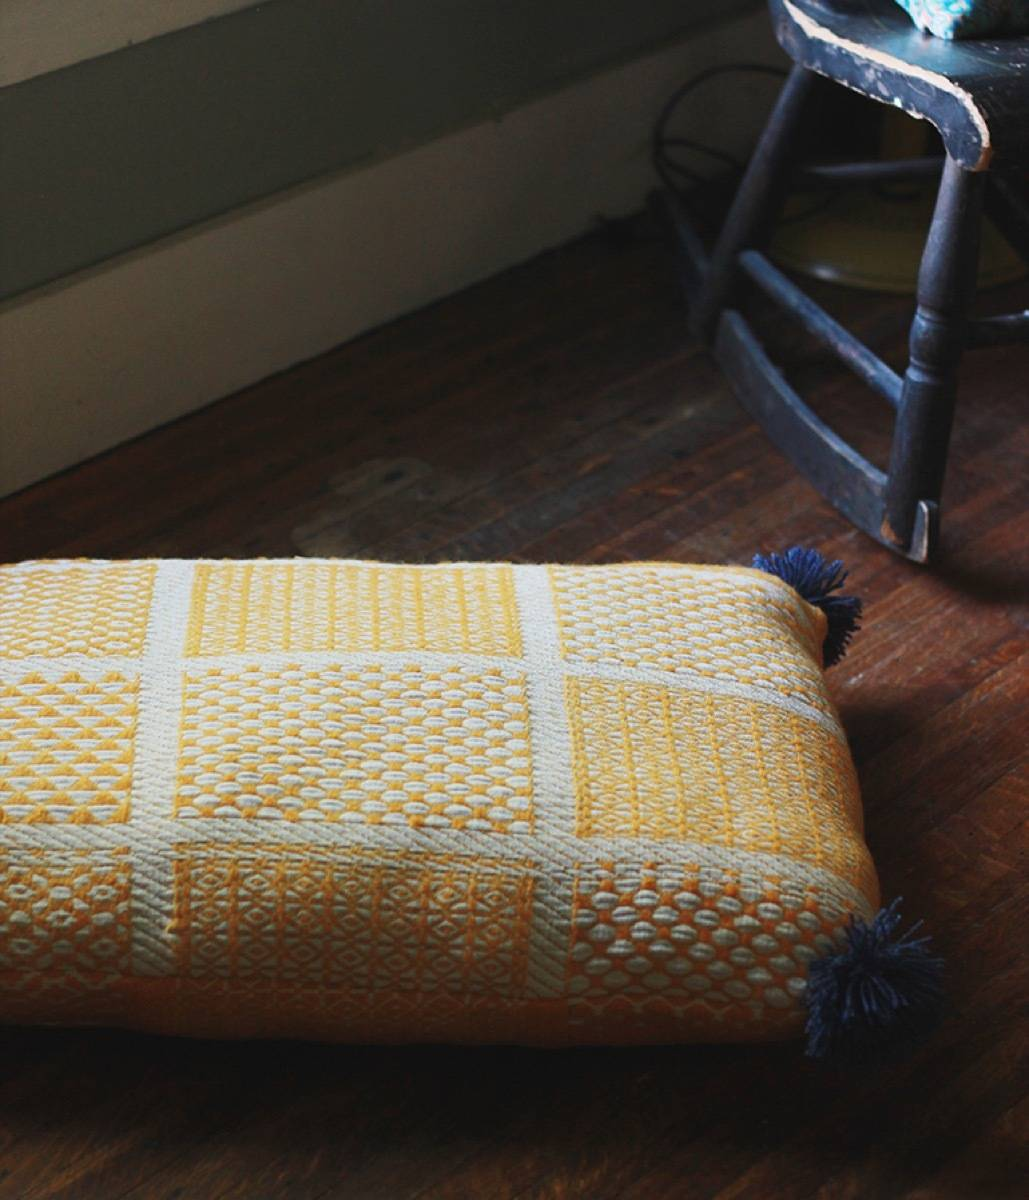 99 ways to use fabric to decorate your home   DIY floor pillow